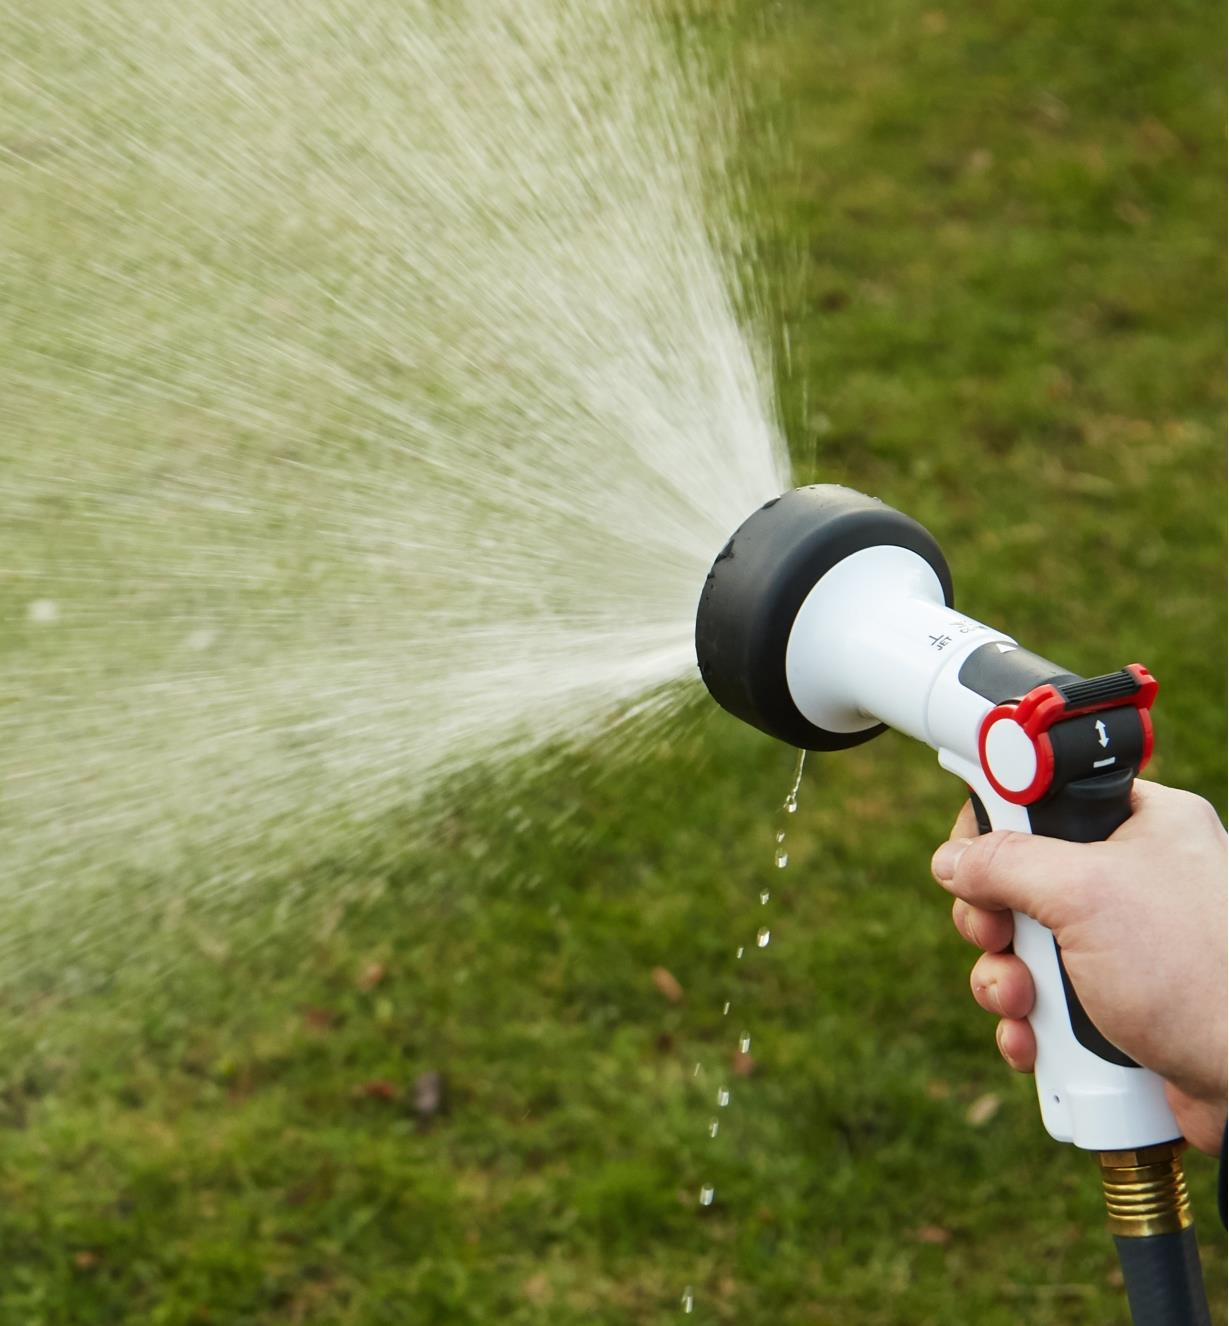 Large shower nozzle spraying water using the cone setting